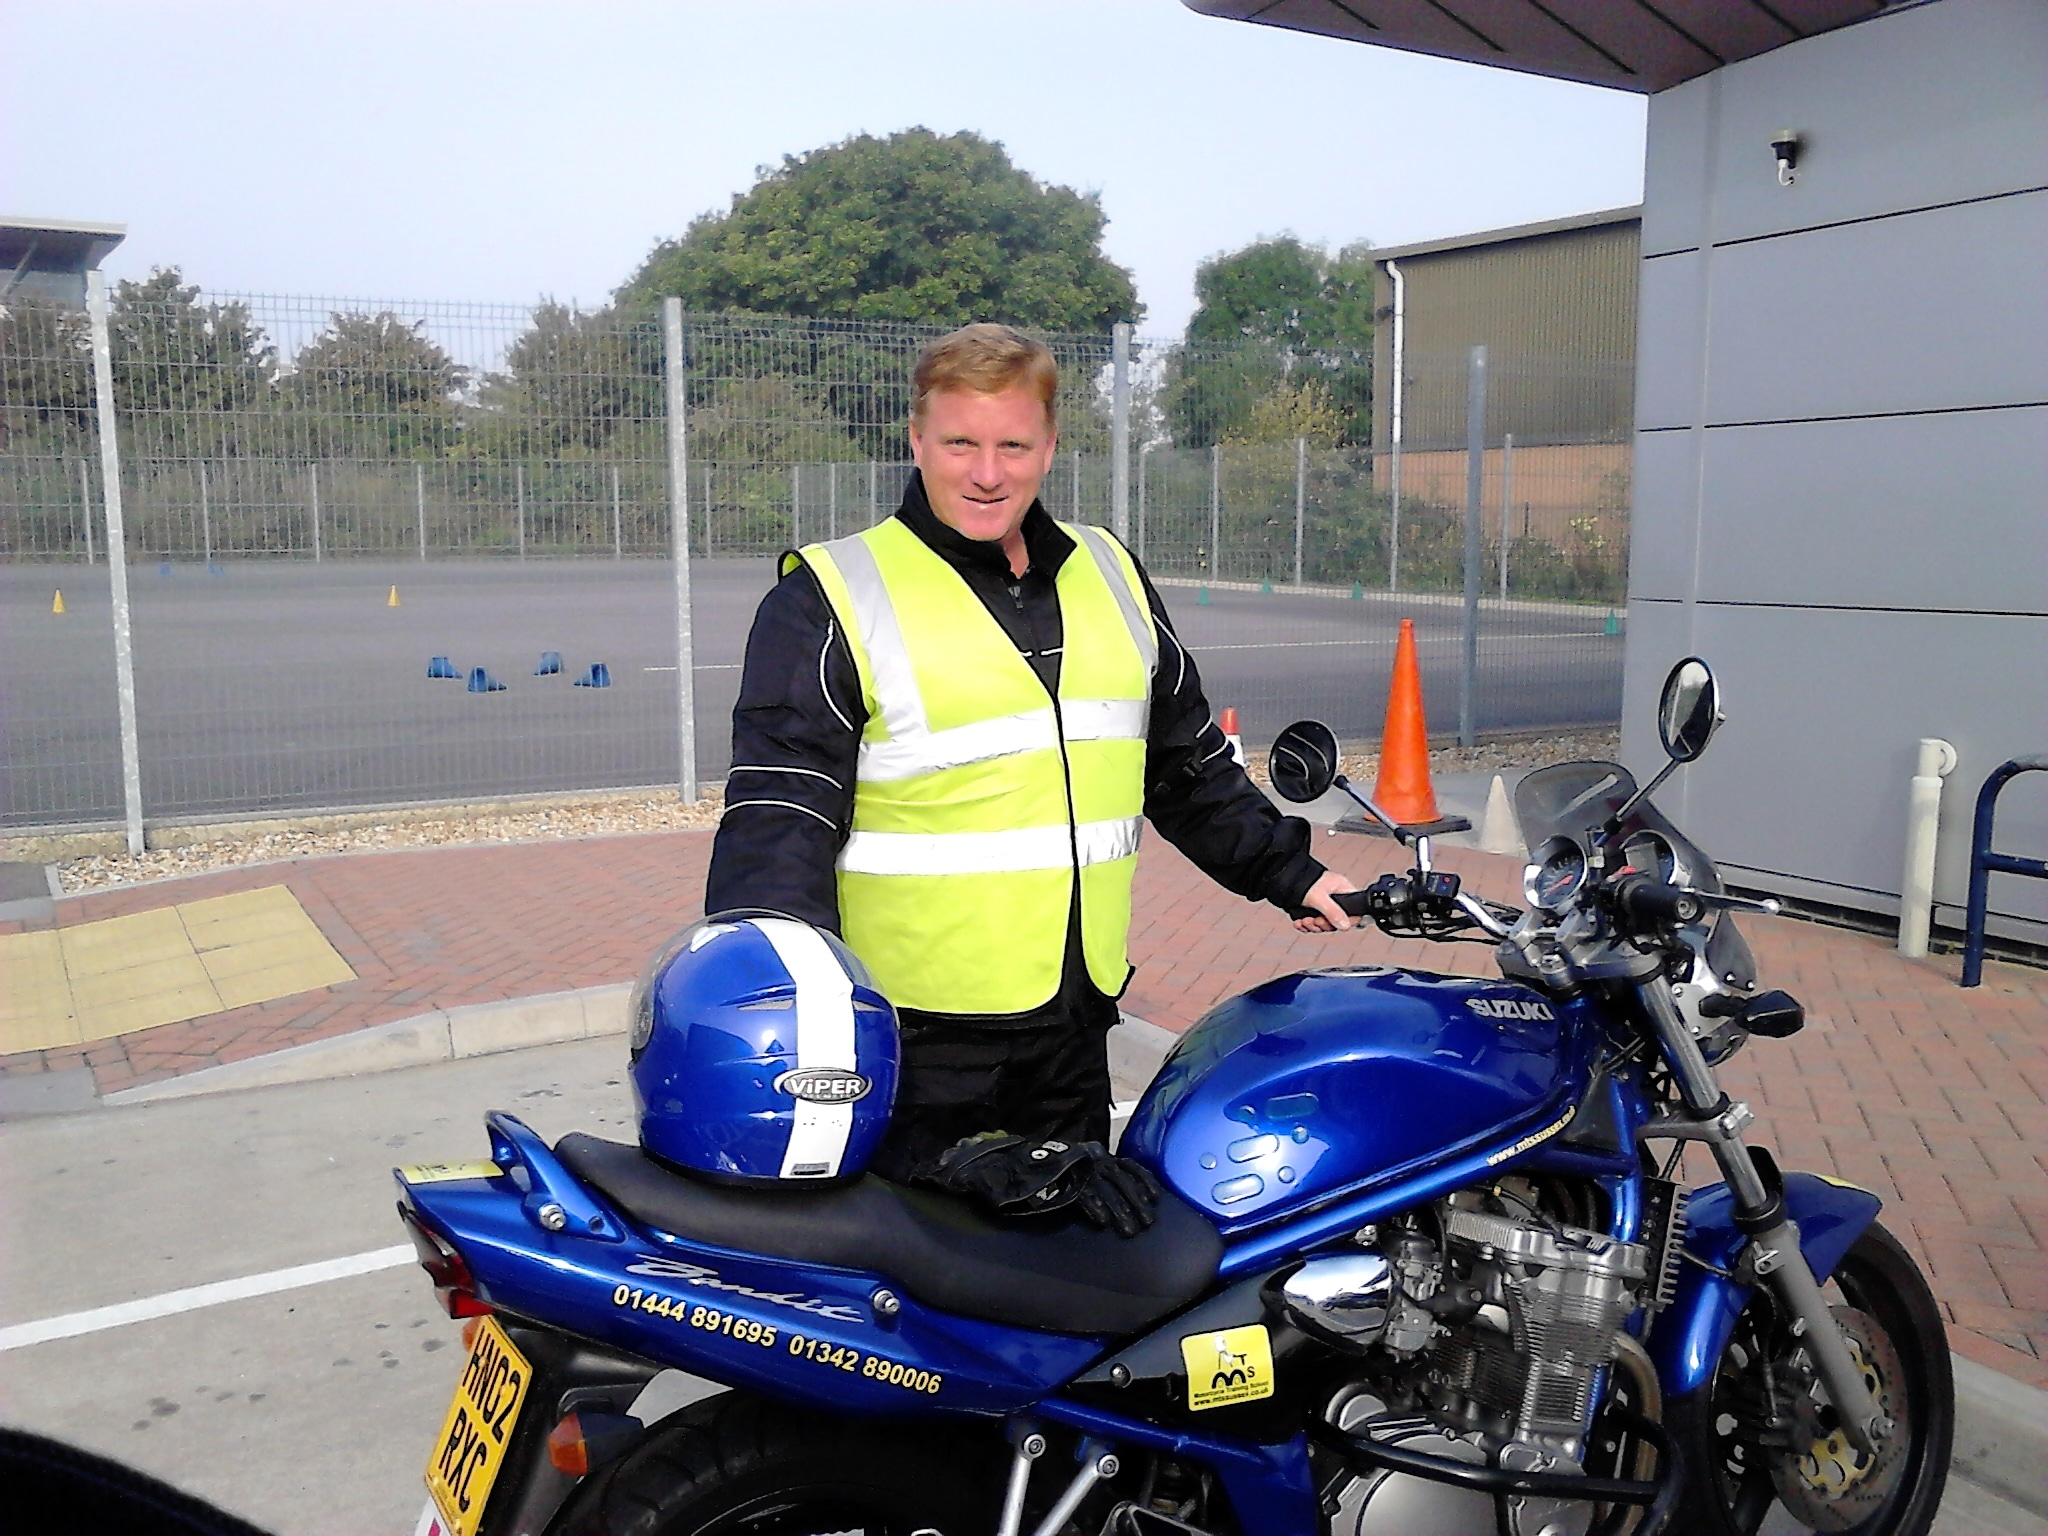 Crowborough blessed with another biker!